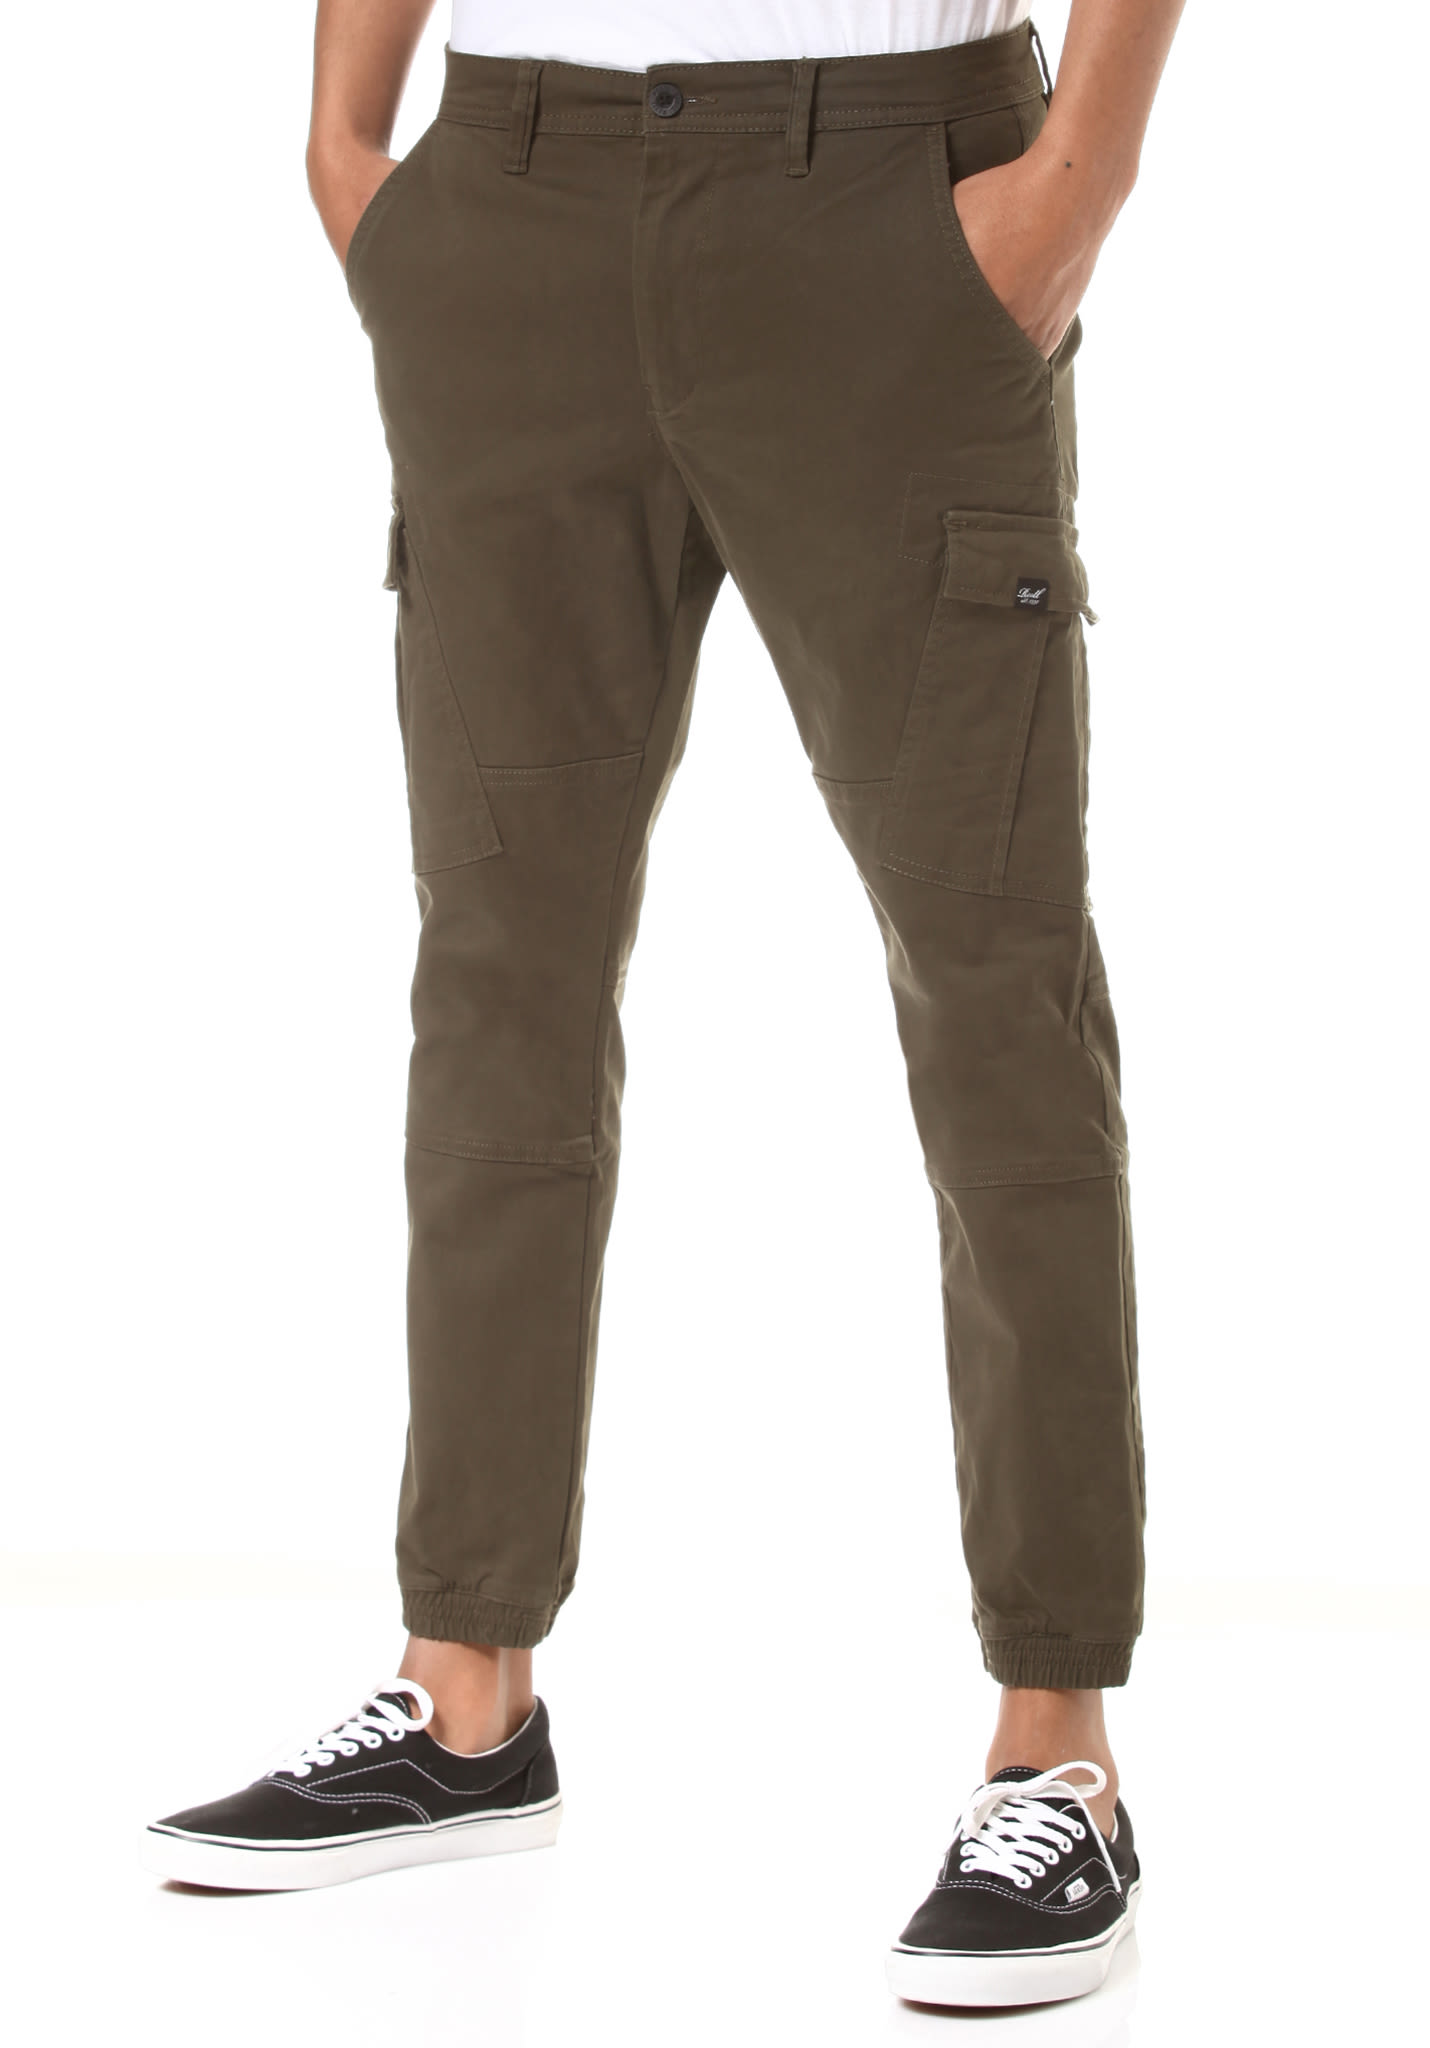 feb9aeb8ba0bb0 Reell Jogger - Cargo Pants for Men - Green - Planet Sports